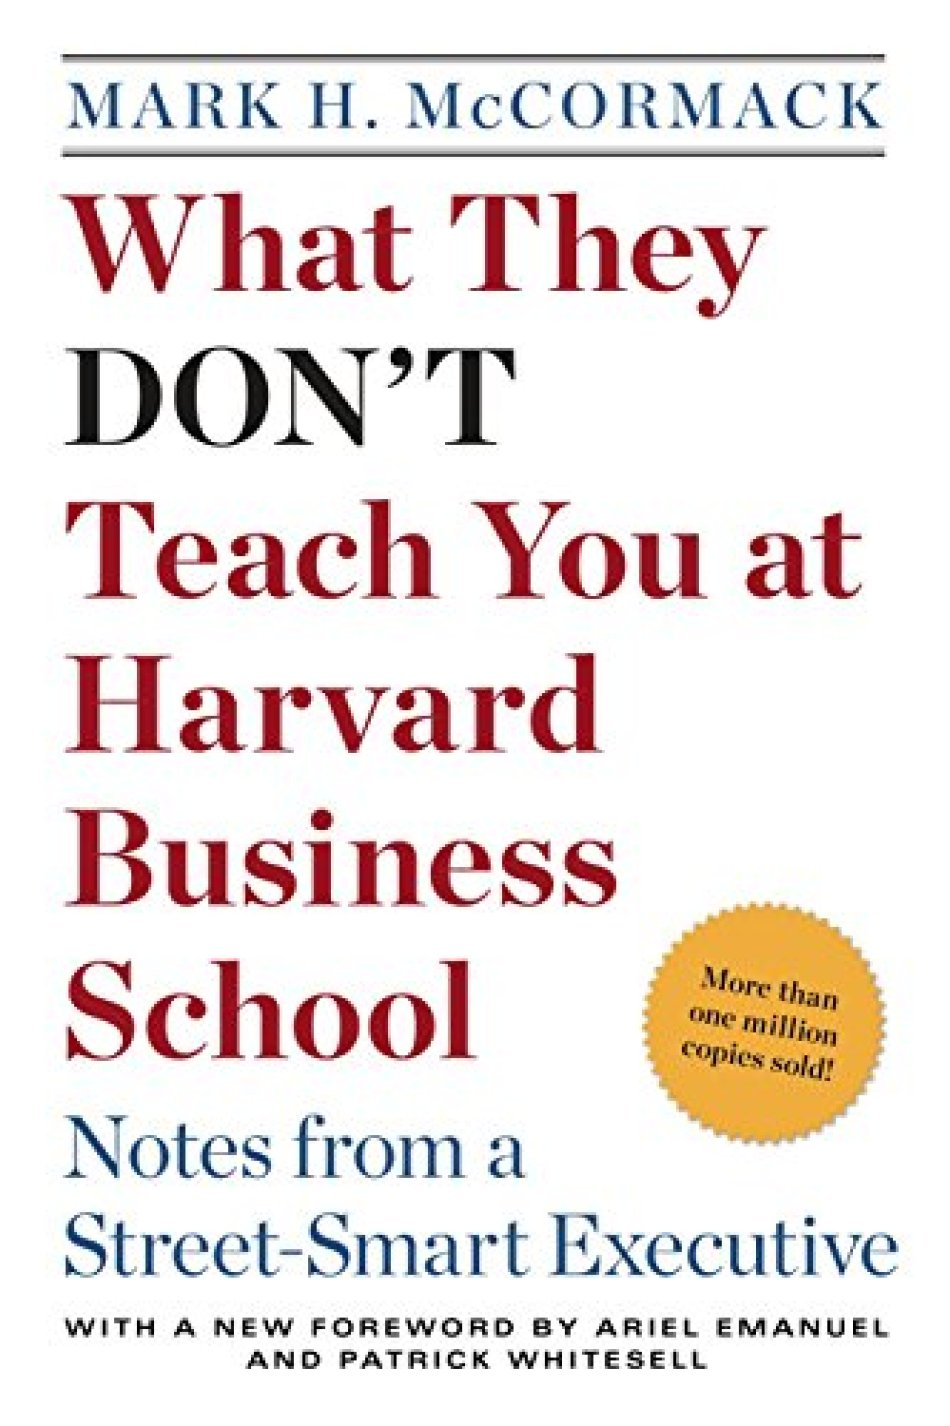 9780553345834: What They Don't Teach You at Harvard Business School: Notes from a Street-smart Executive - AbeBooks - McCormack, Mark H.: 0553345834